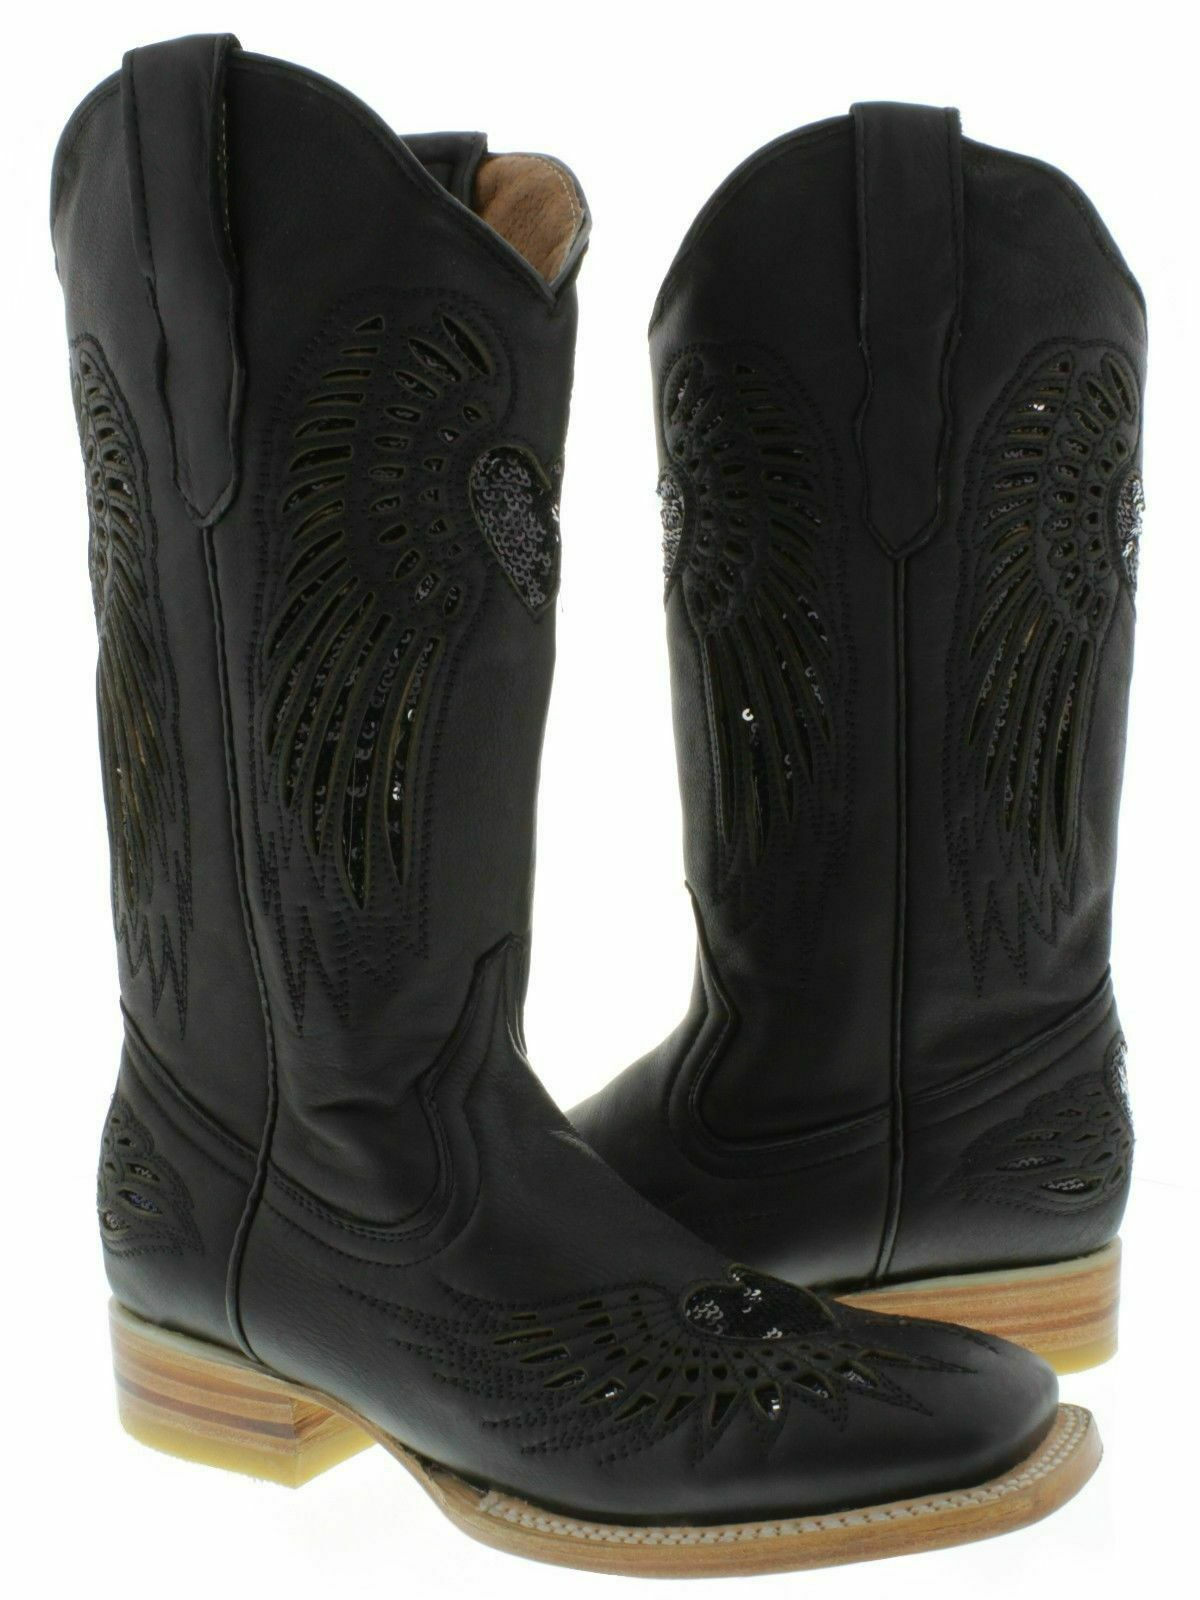 donna Cowboy stivali Heart Wing nero Leather Inlay Sequins  Square Toe Dimensione 6.5  vendita outlet